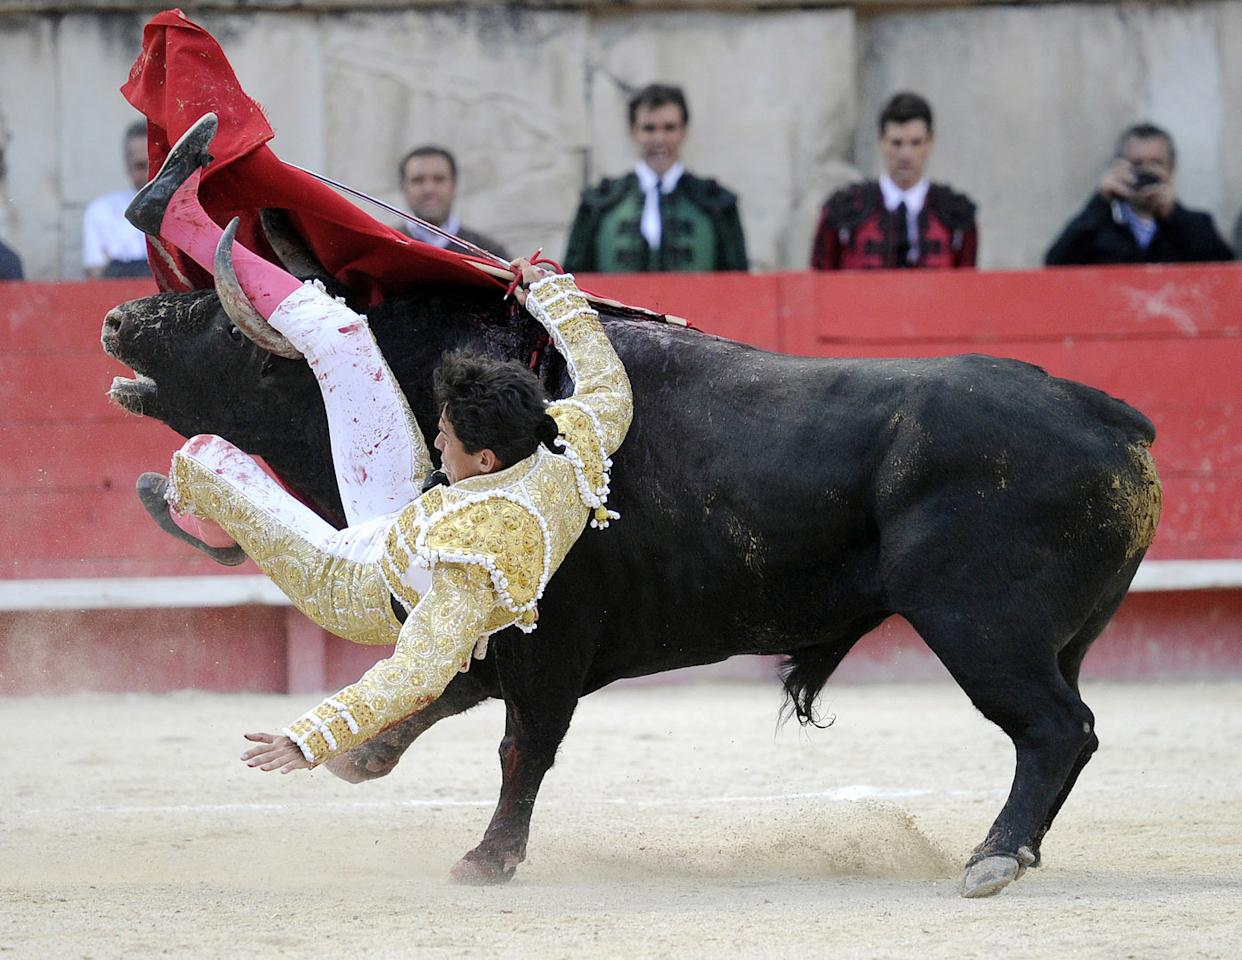 Mexican matador Diego Silveti is gored by a bull on May 20, 2013 during the Nimes Pentecost Feria in Nimes, southern France.  AFP PHOTO / PASCAL GUYOT